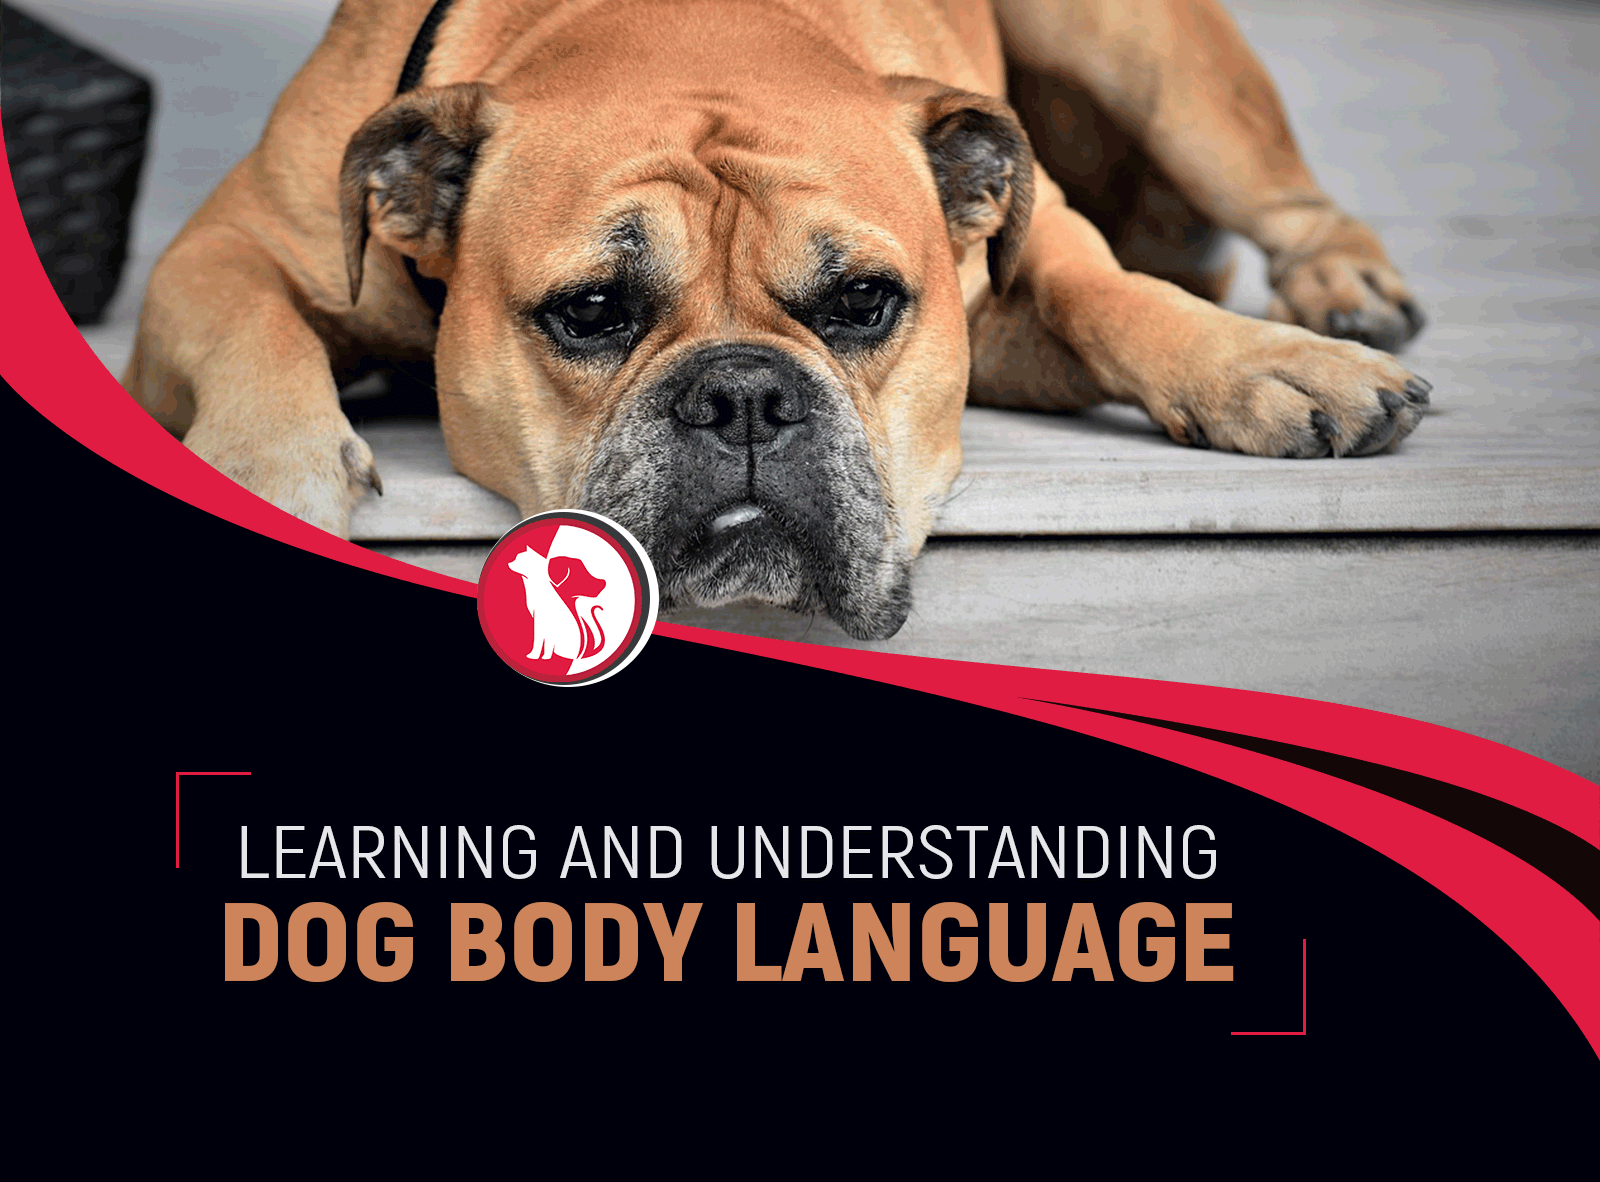 Learning and Understanding Dog Body Language